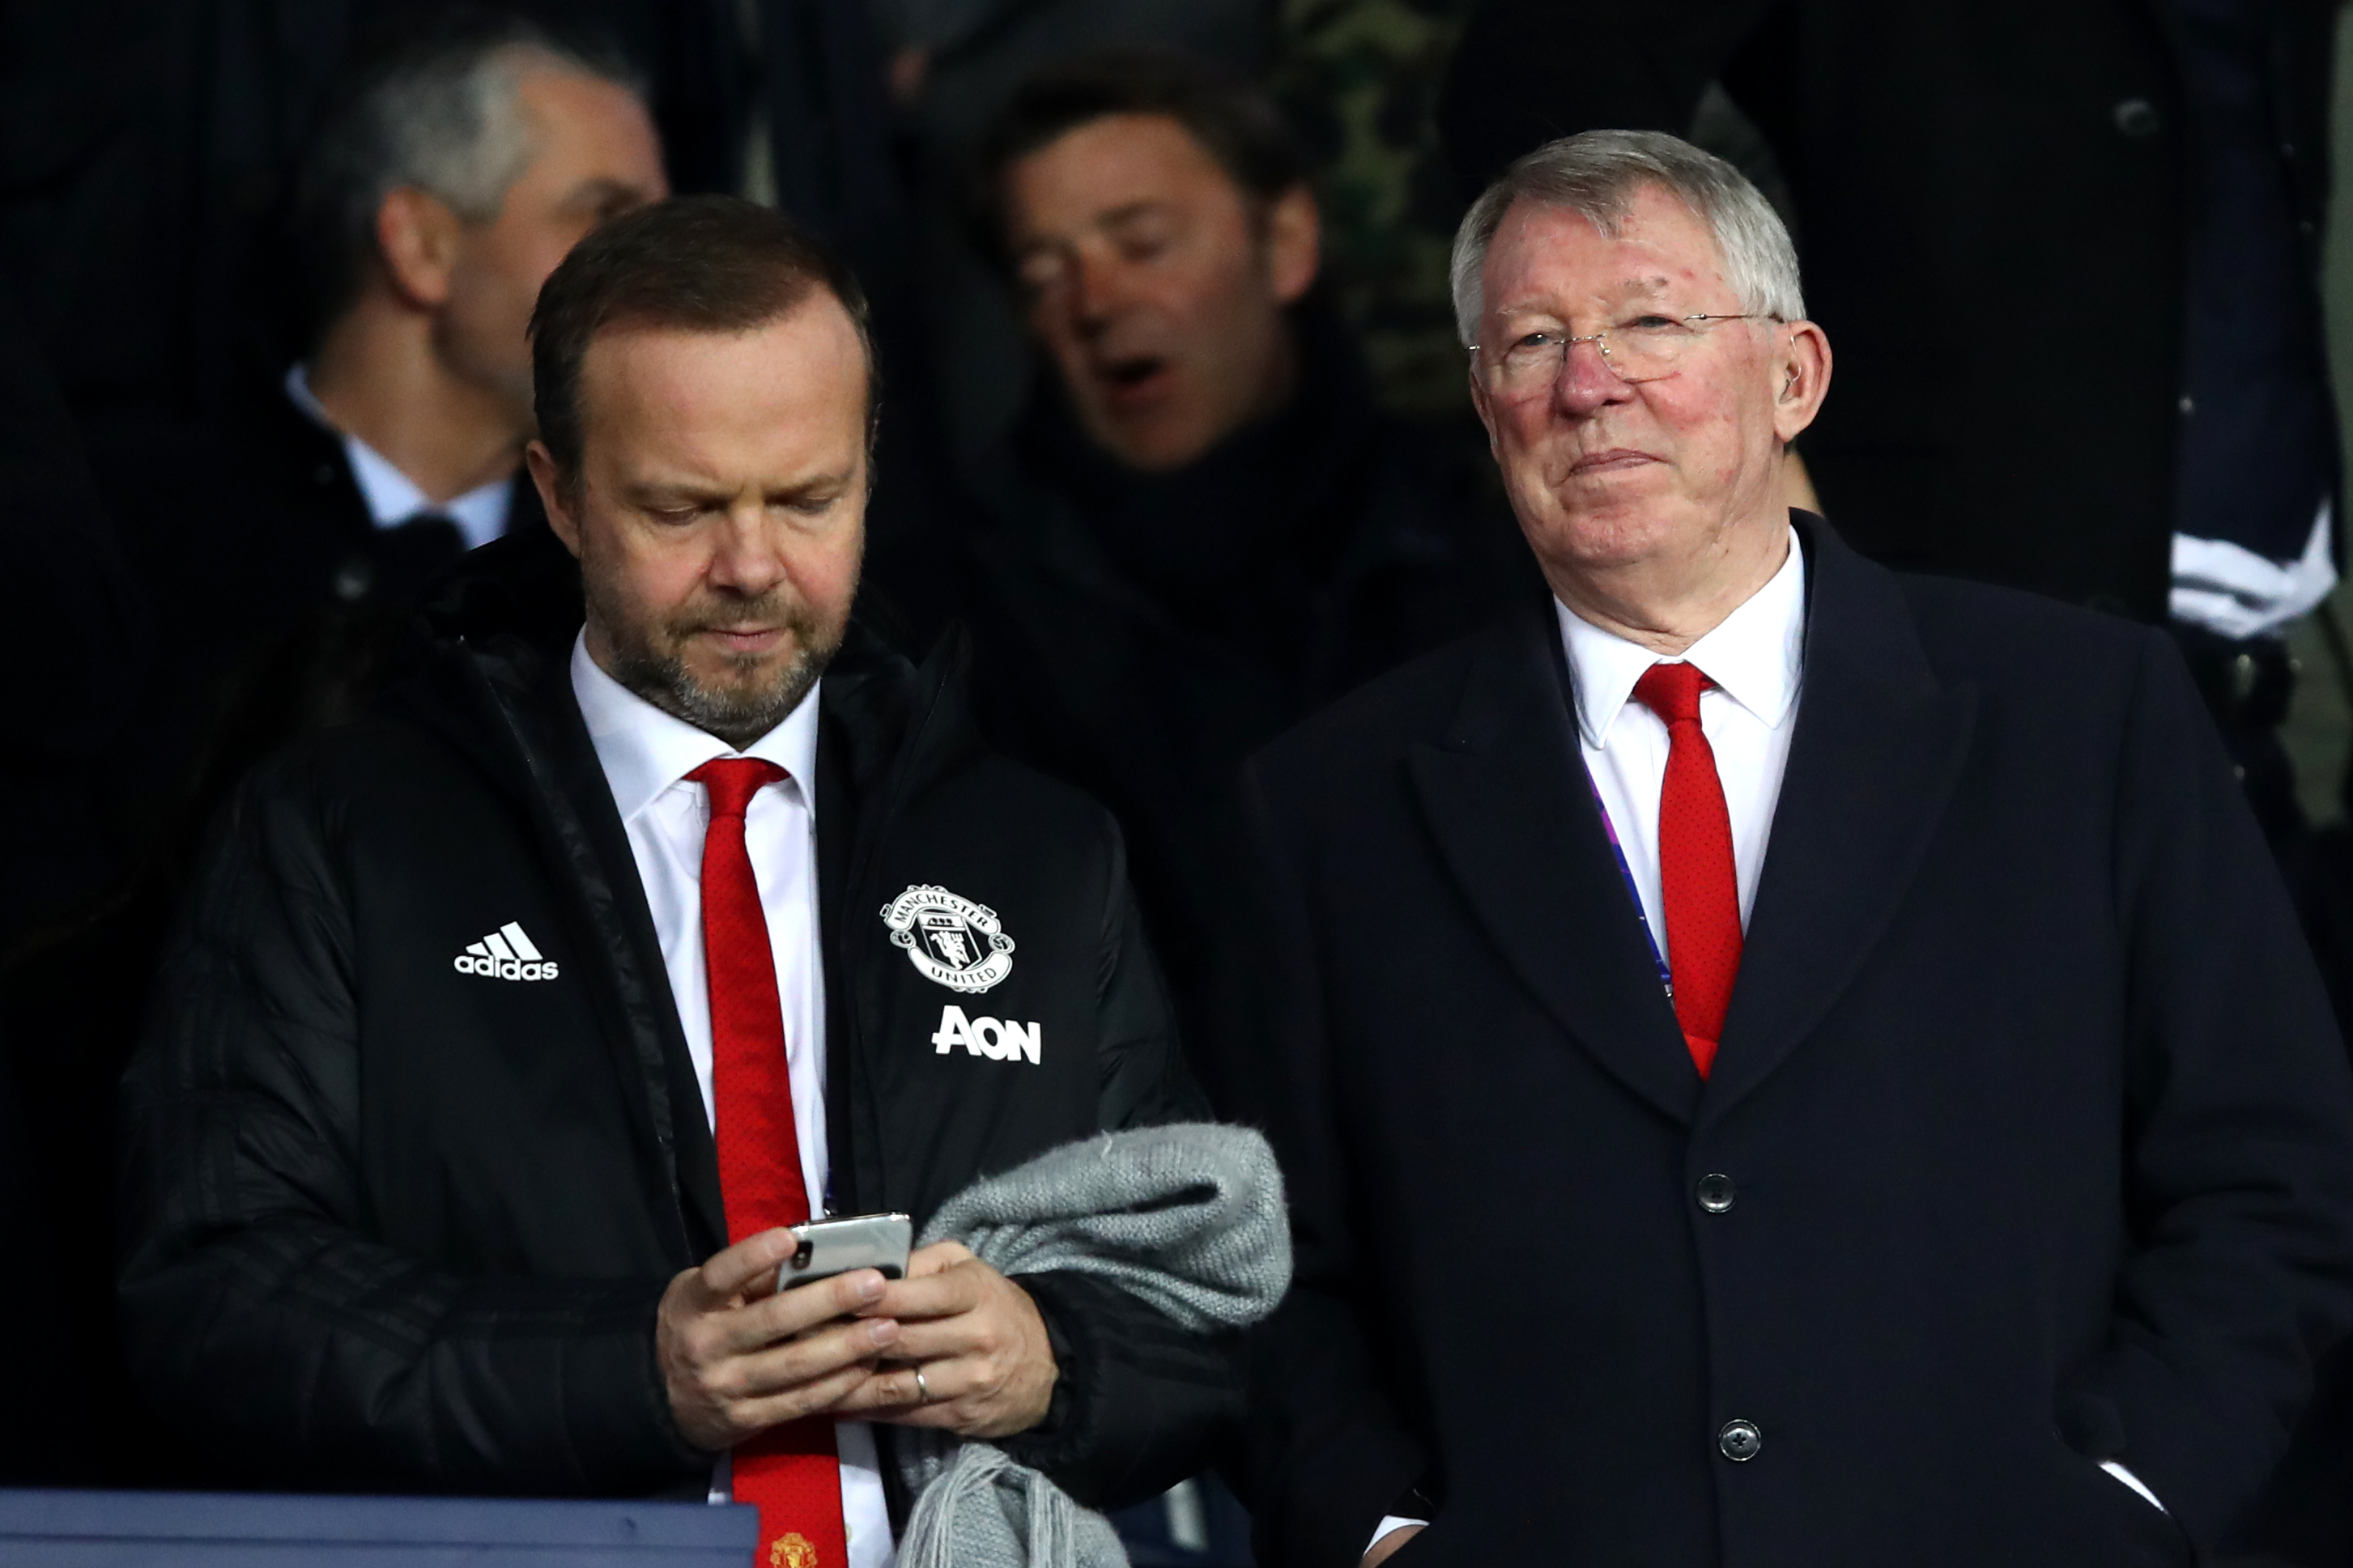 Things have been gloomy at Manchester United after Sir Alex Ferguson's retirement (Photo by Julian Finney/Getty Images)